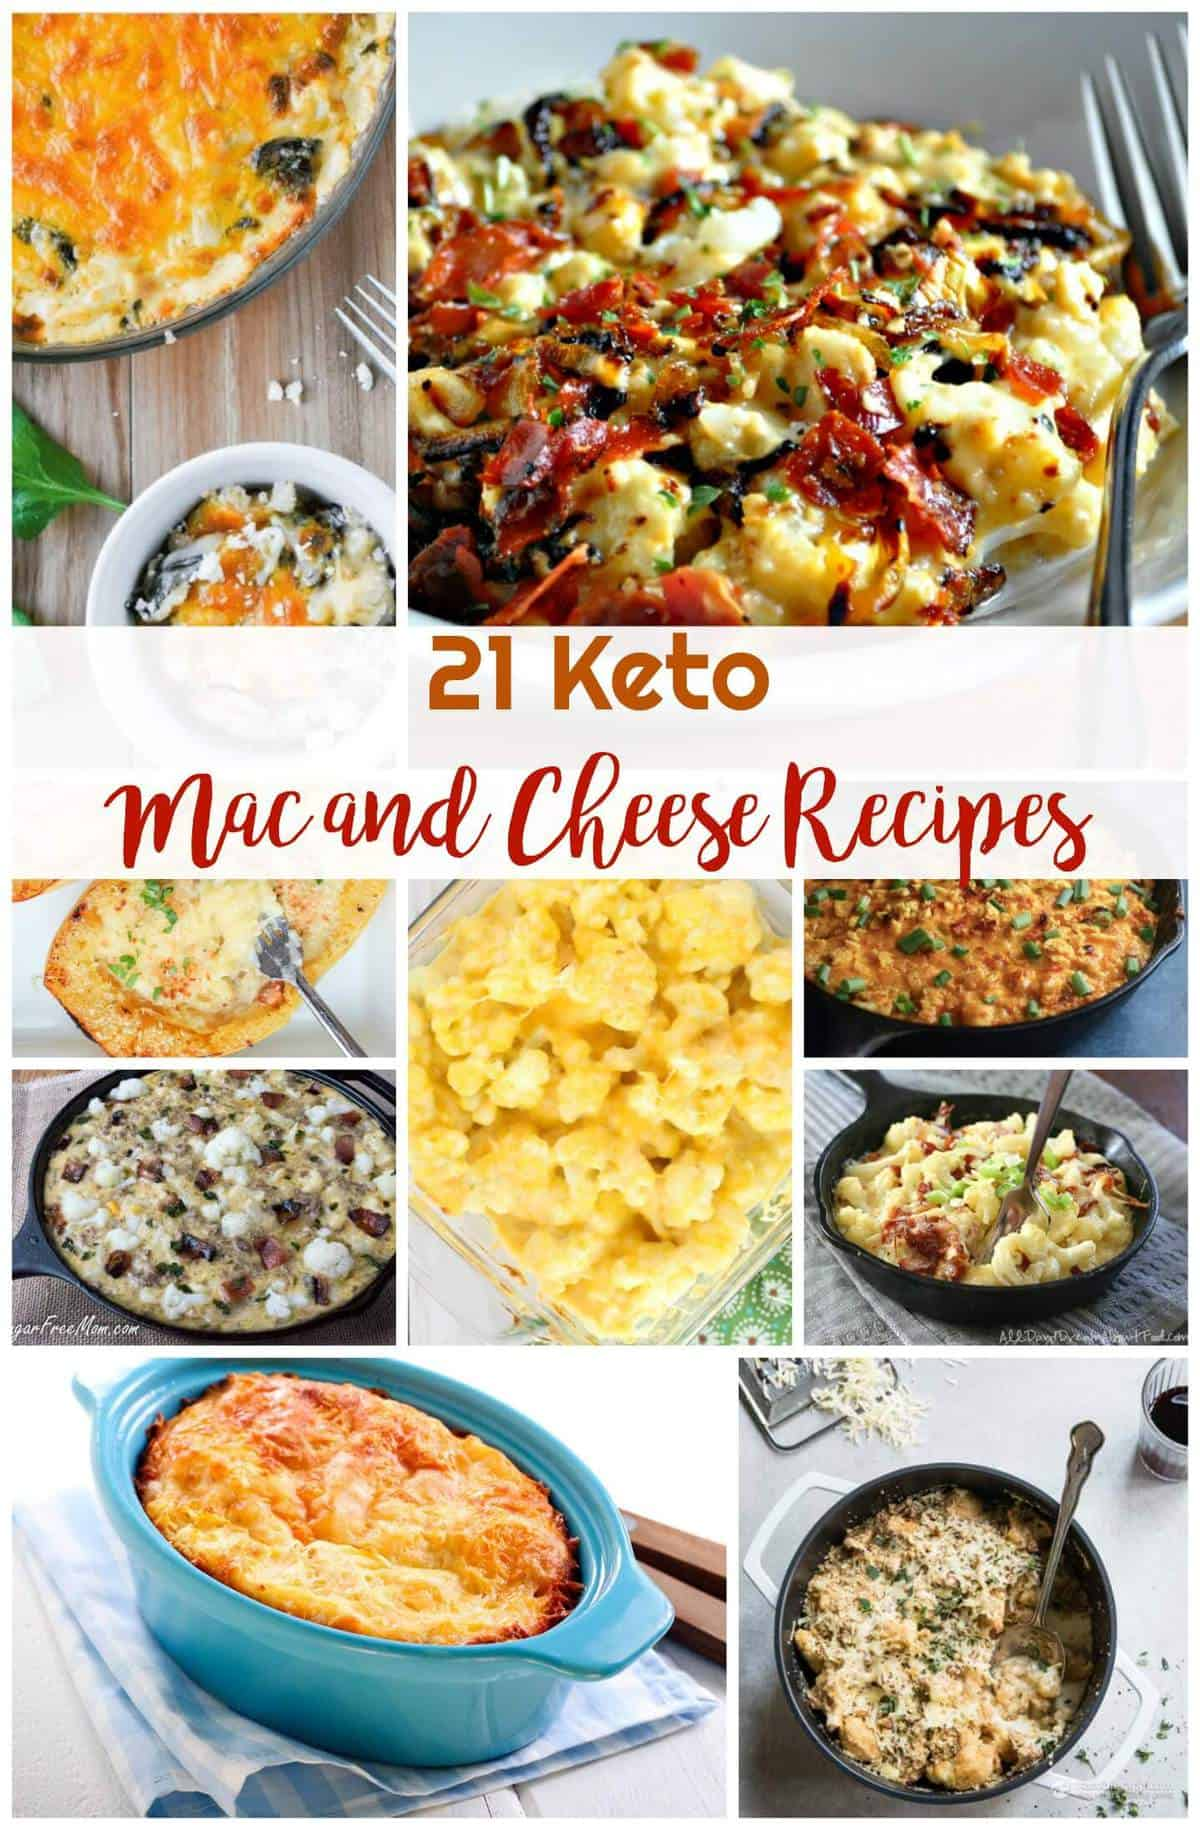 21 Keto Mac and Cheese Recipes | Healthy Living in Body and Mind